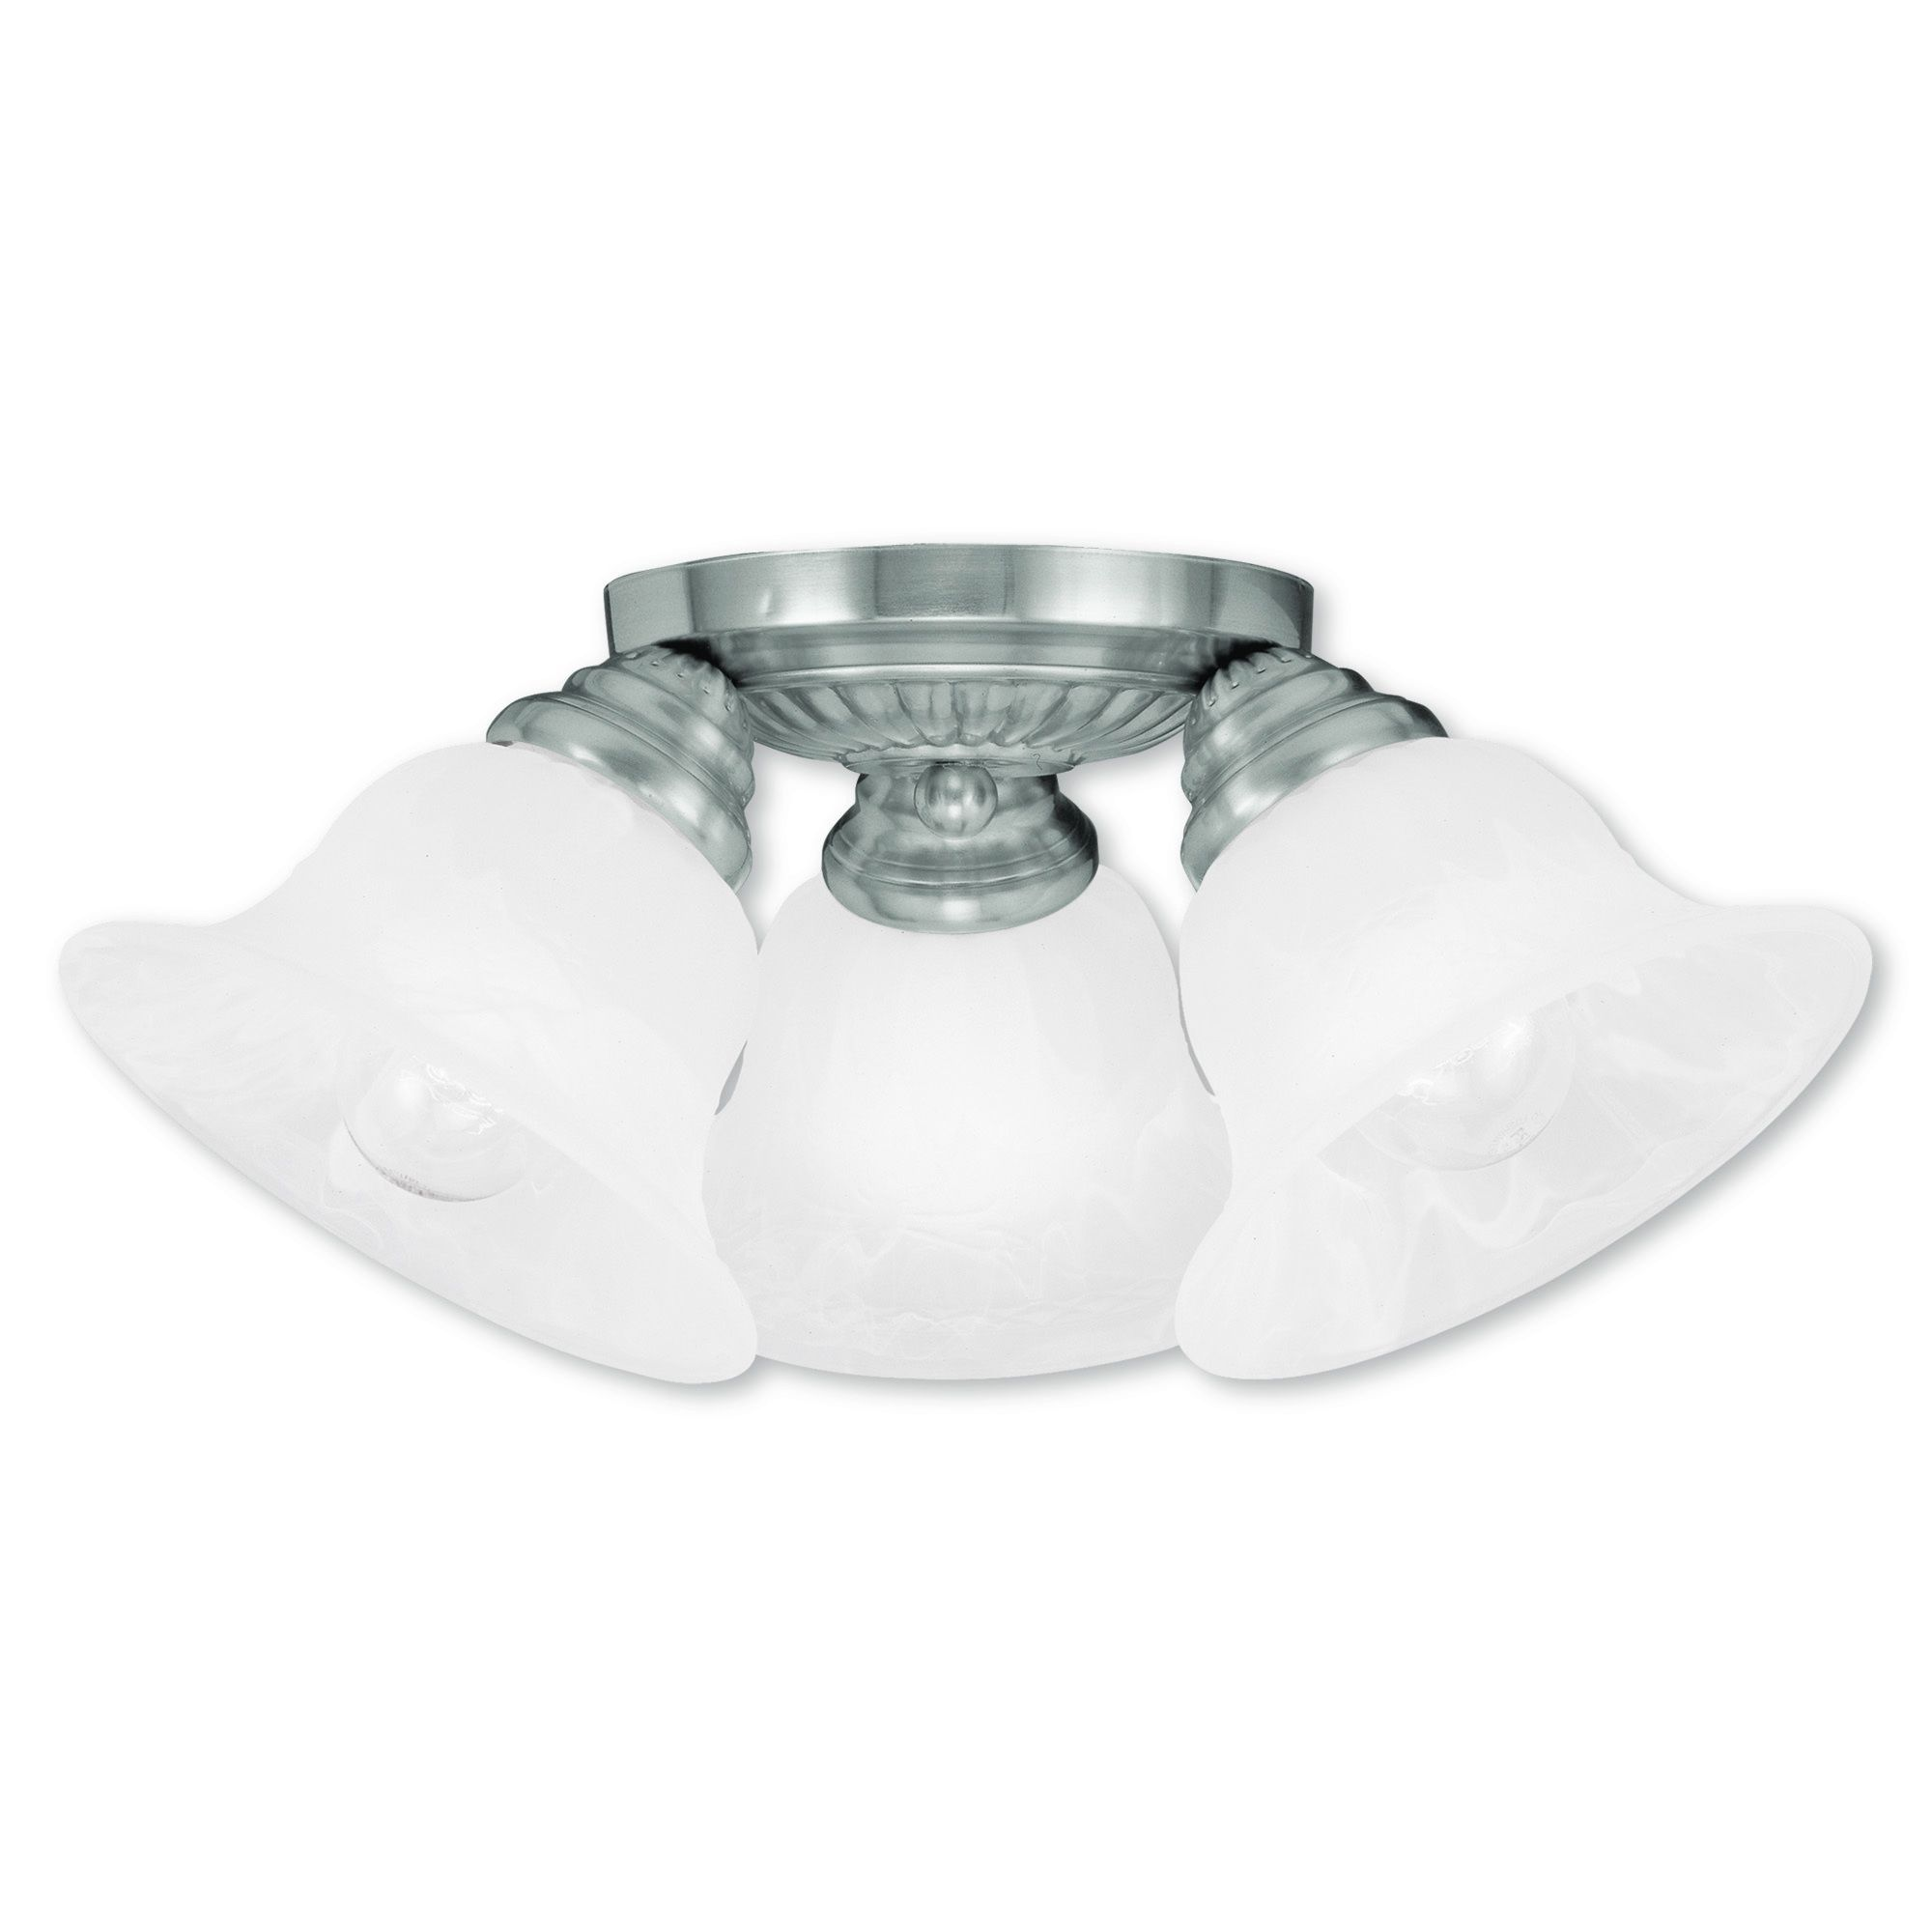 cornerstone details fixtures ceiling more asp lighting mount brushed flush nickel best and showitems the jackson light most ceilings selection